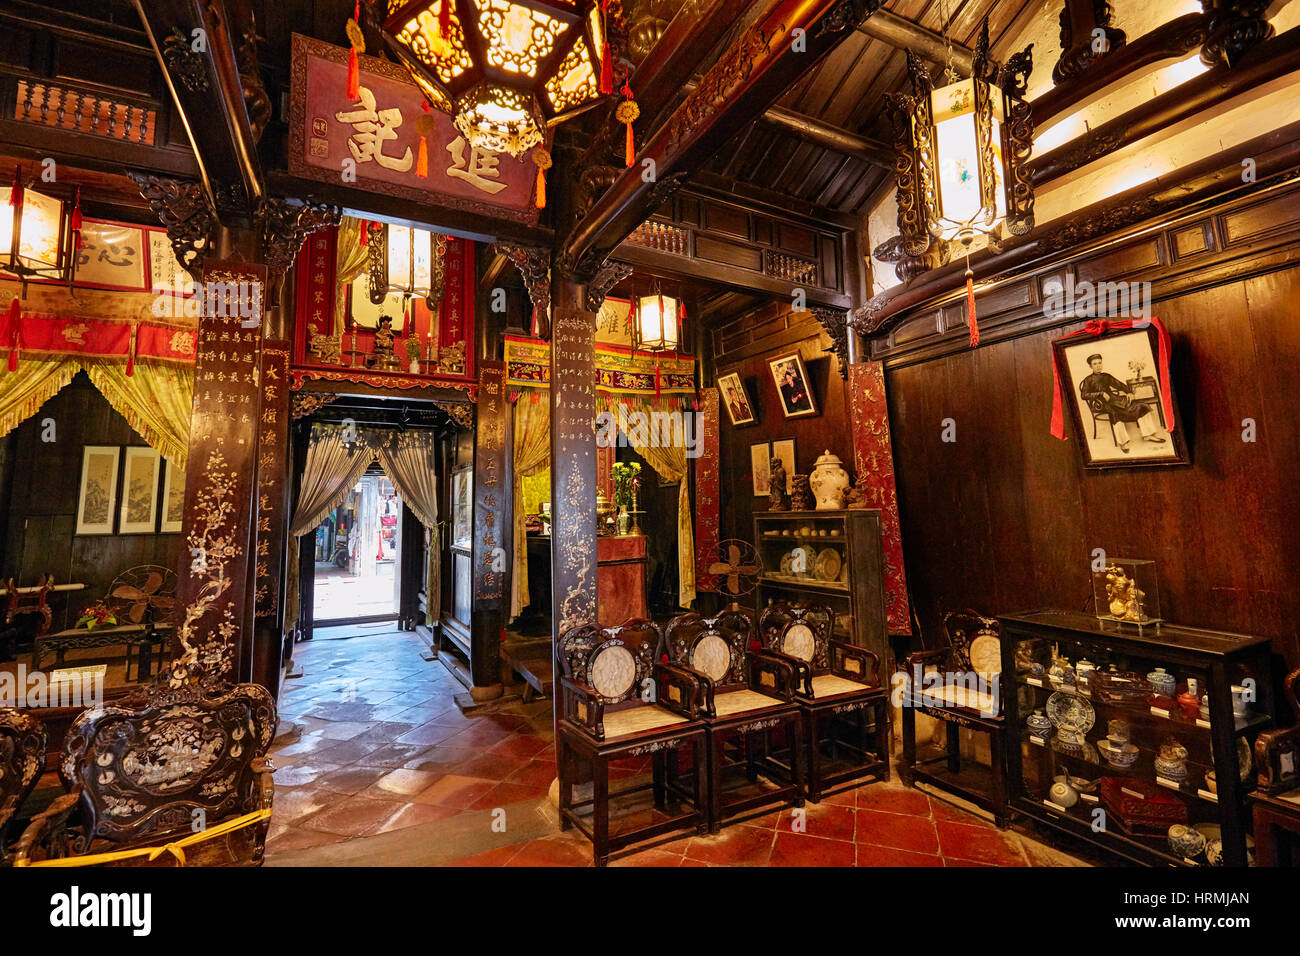 Old hoi an stockfotos old hoi an bilder alamy for Traditionelles chinesisches haus hanoi